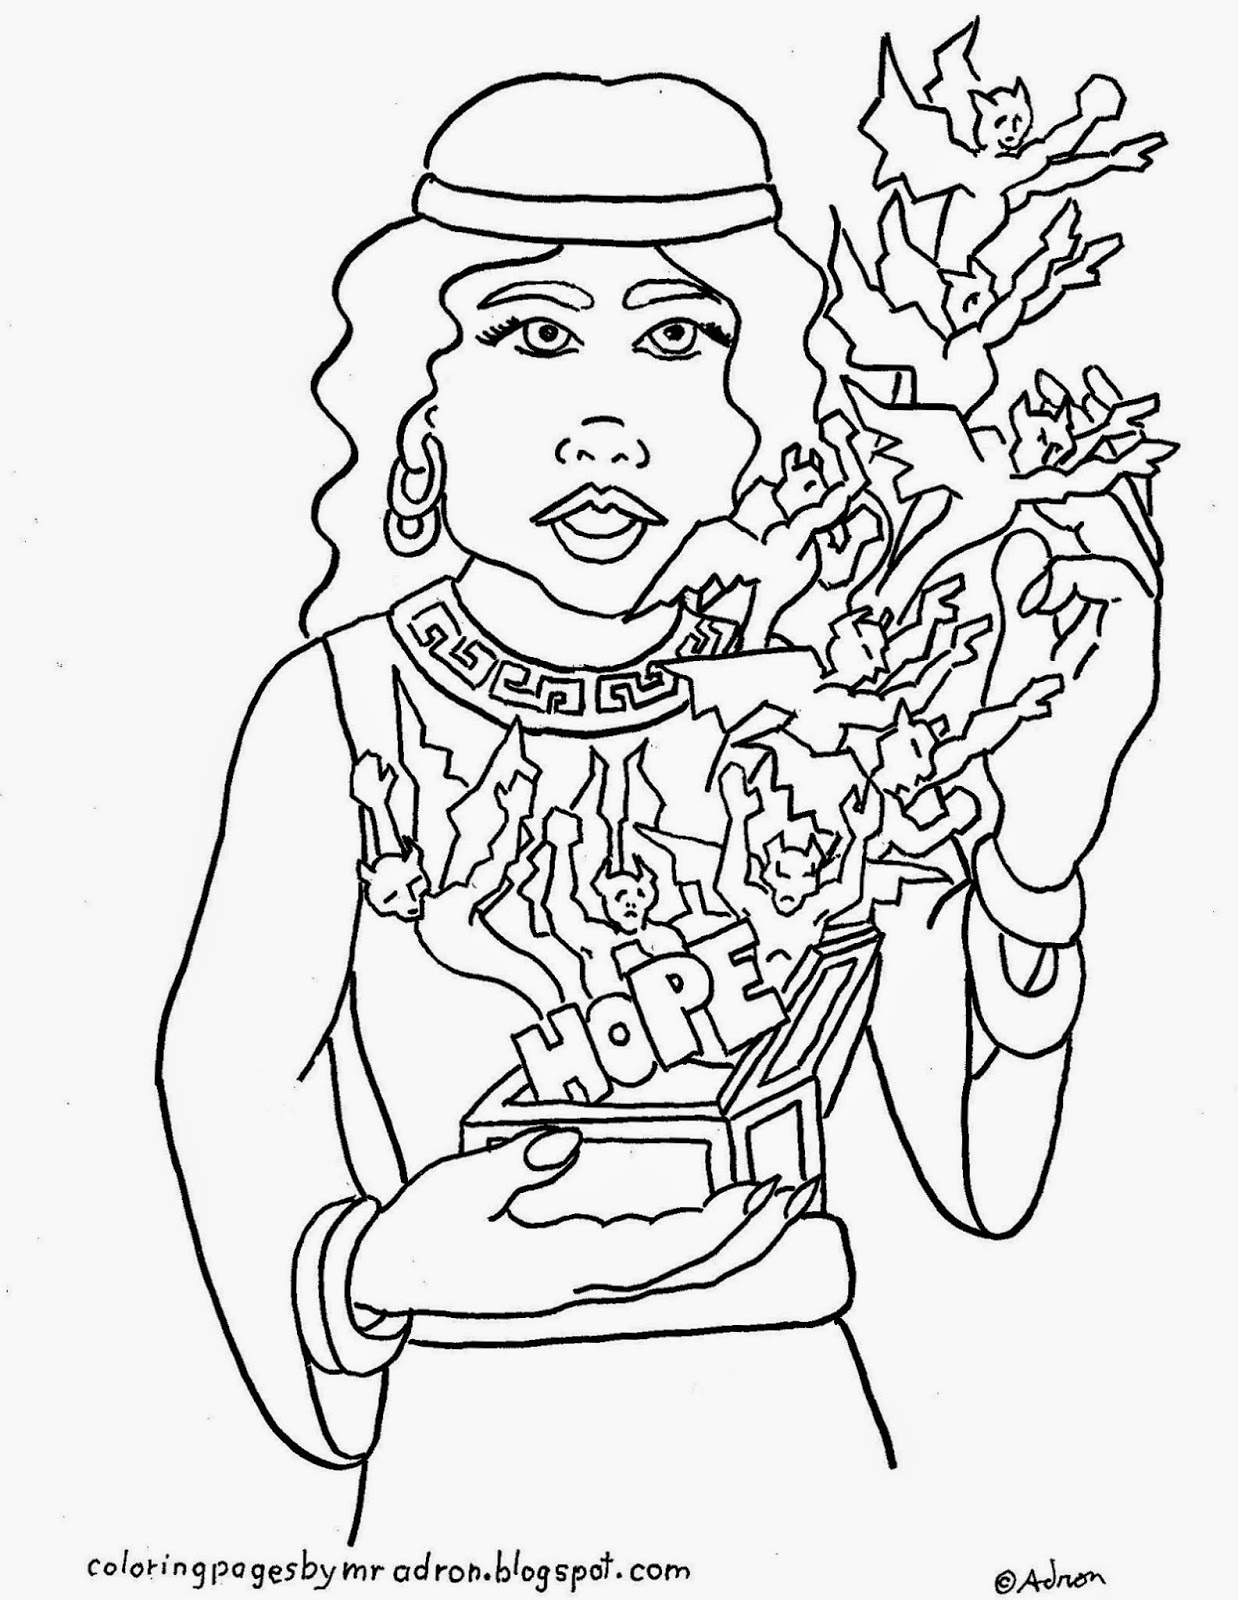 Coloring pages greek mythology - Free Pandora And Box Myth Coloring Page